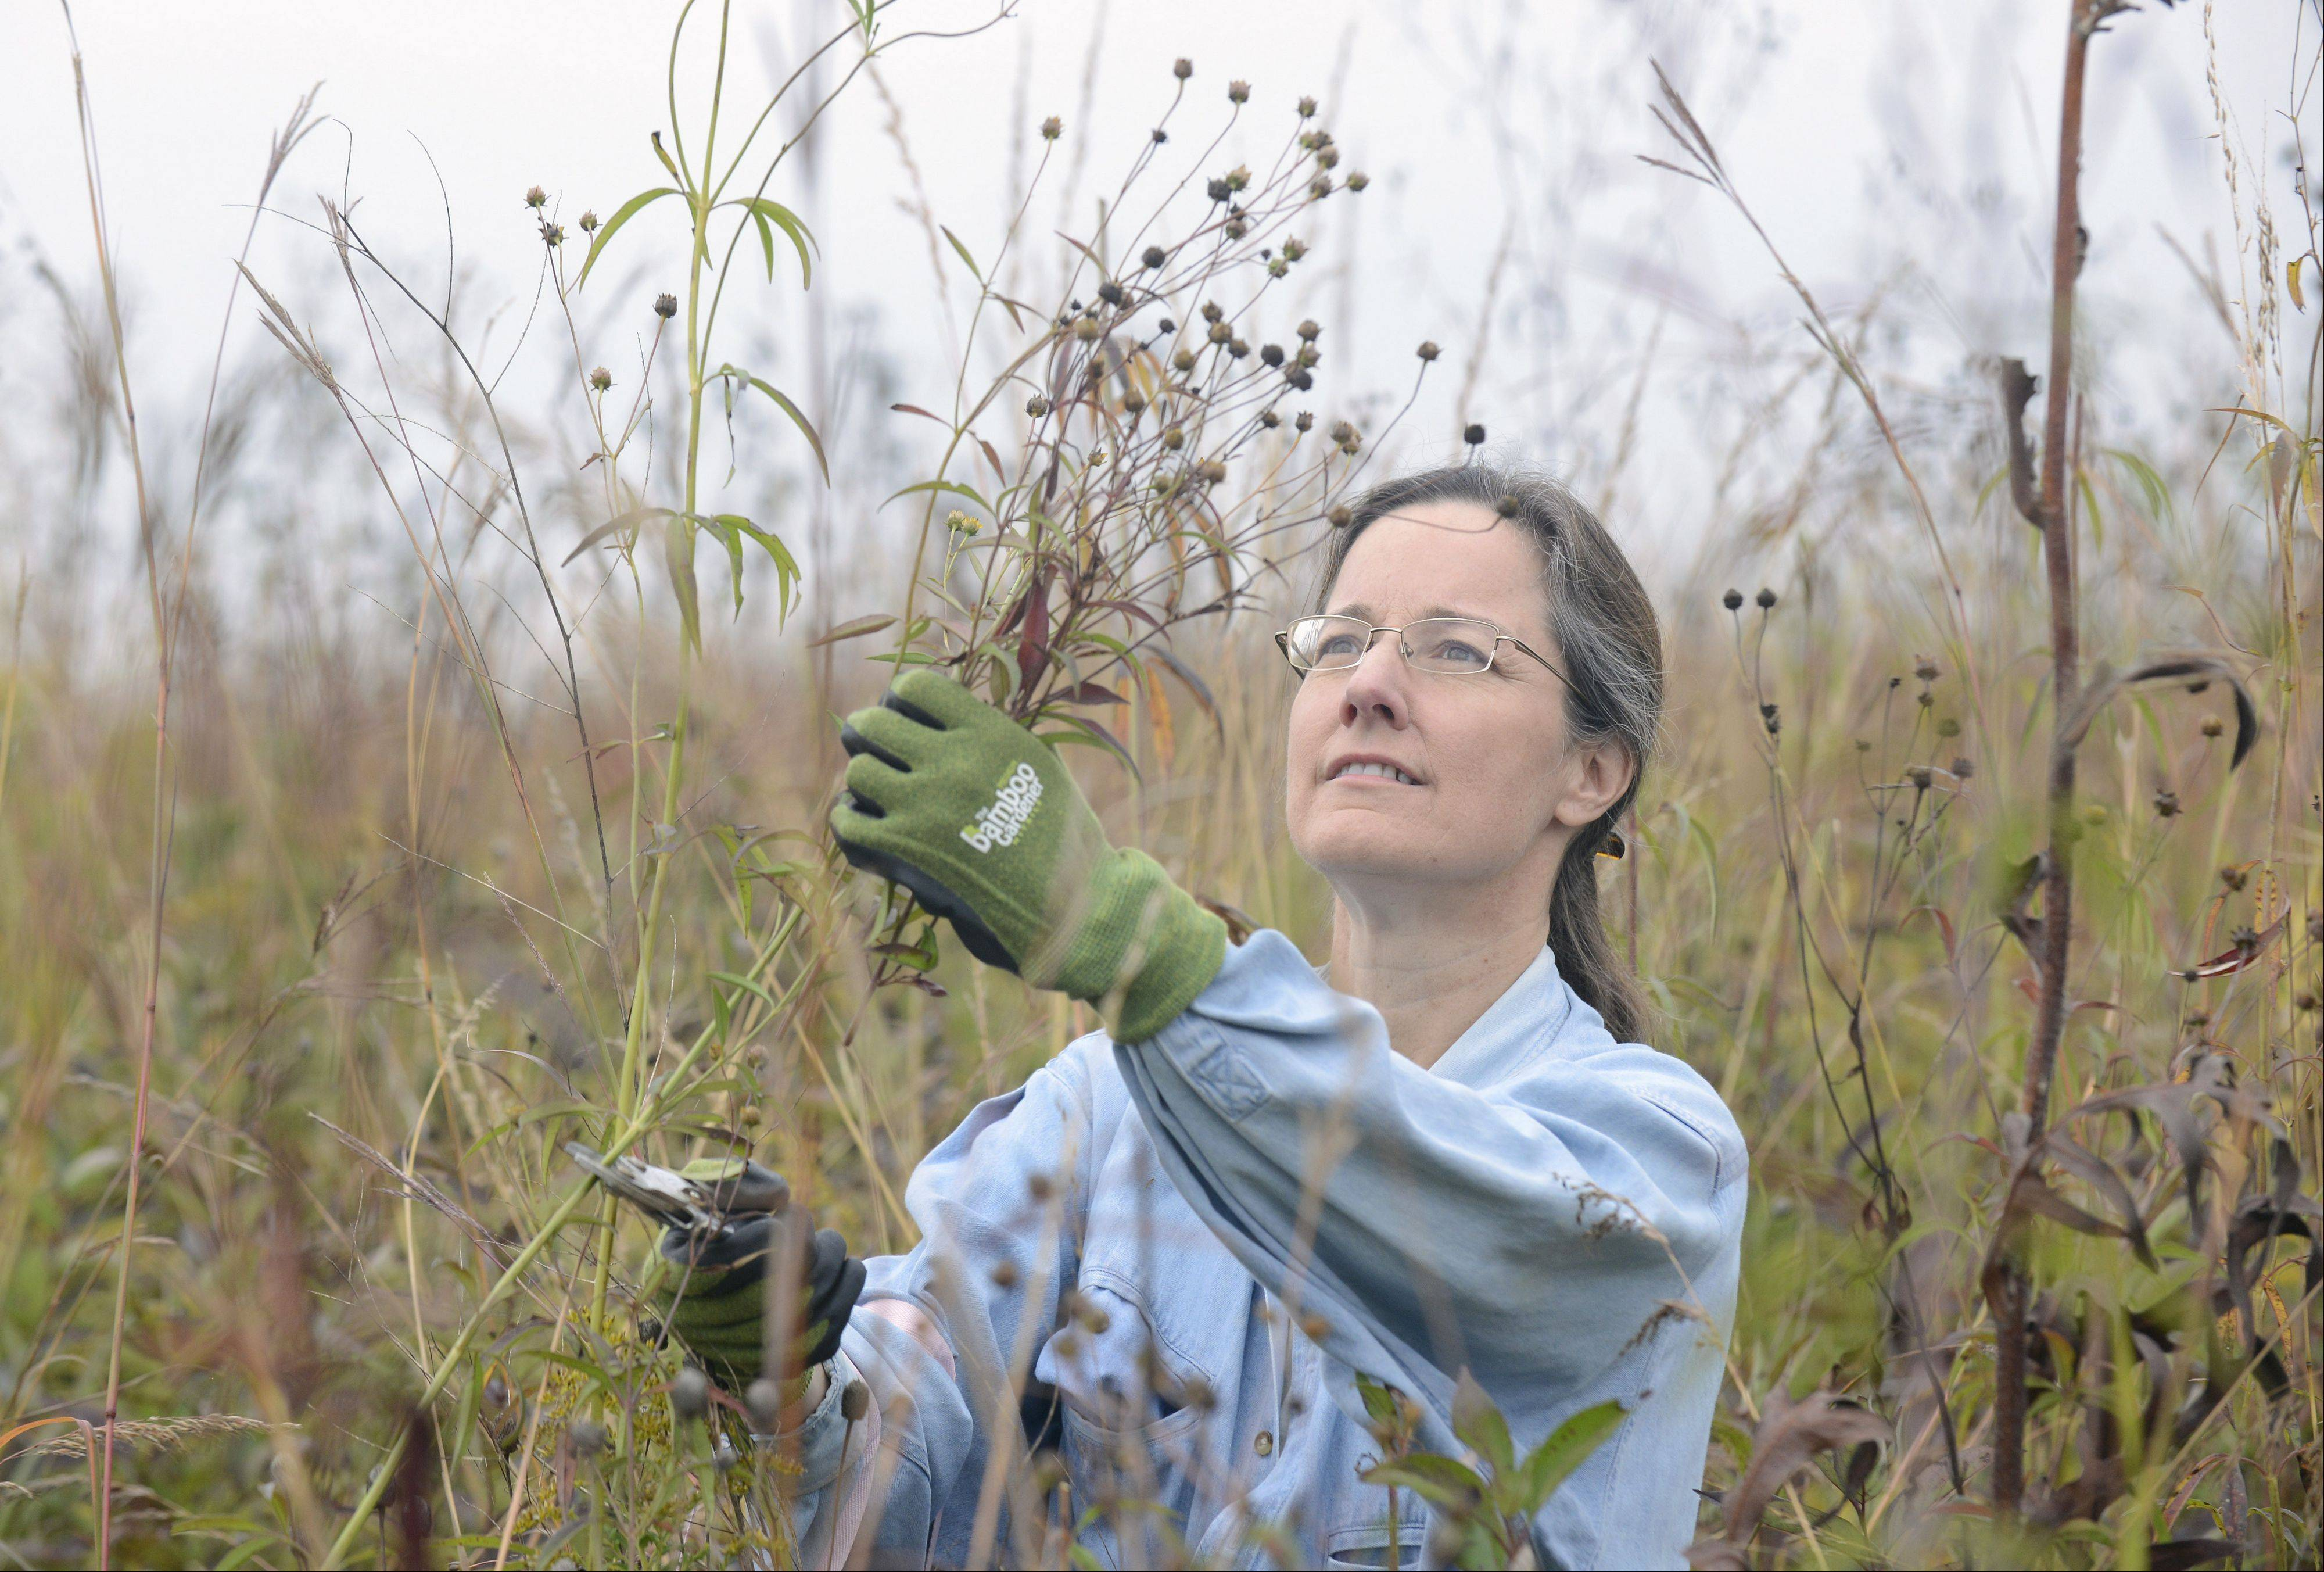 Betsy Zinser of Batavia collects tall coreopsis seed pods at Fermilab's annual prairie seed harvest of the Robert F. Betz Prairie Saturday. This is Zinser's first time helping at the event. She is also on the board of Fermilab Natural Areas, a not-for-profit group dedicated to taking care of the natural areas at Fermilab. Typically, about 200 people show up to volunteer.